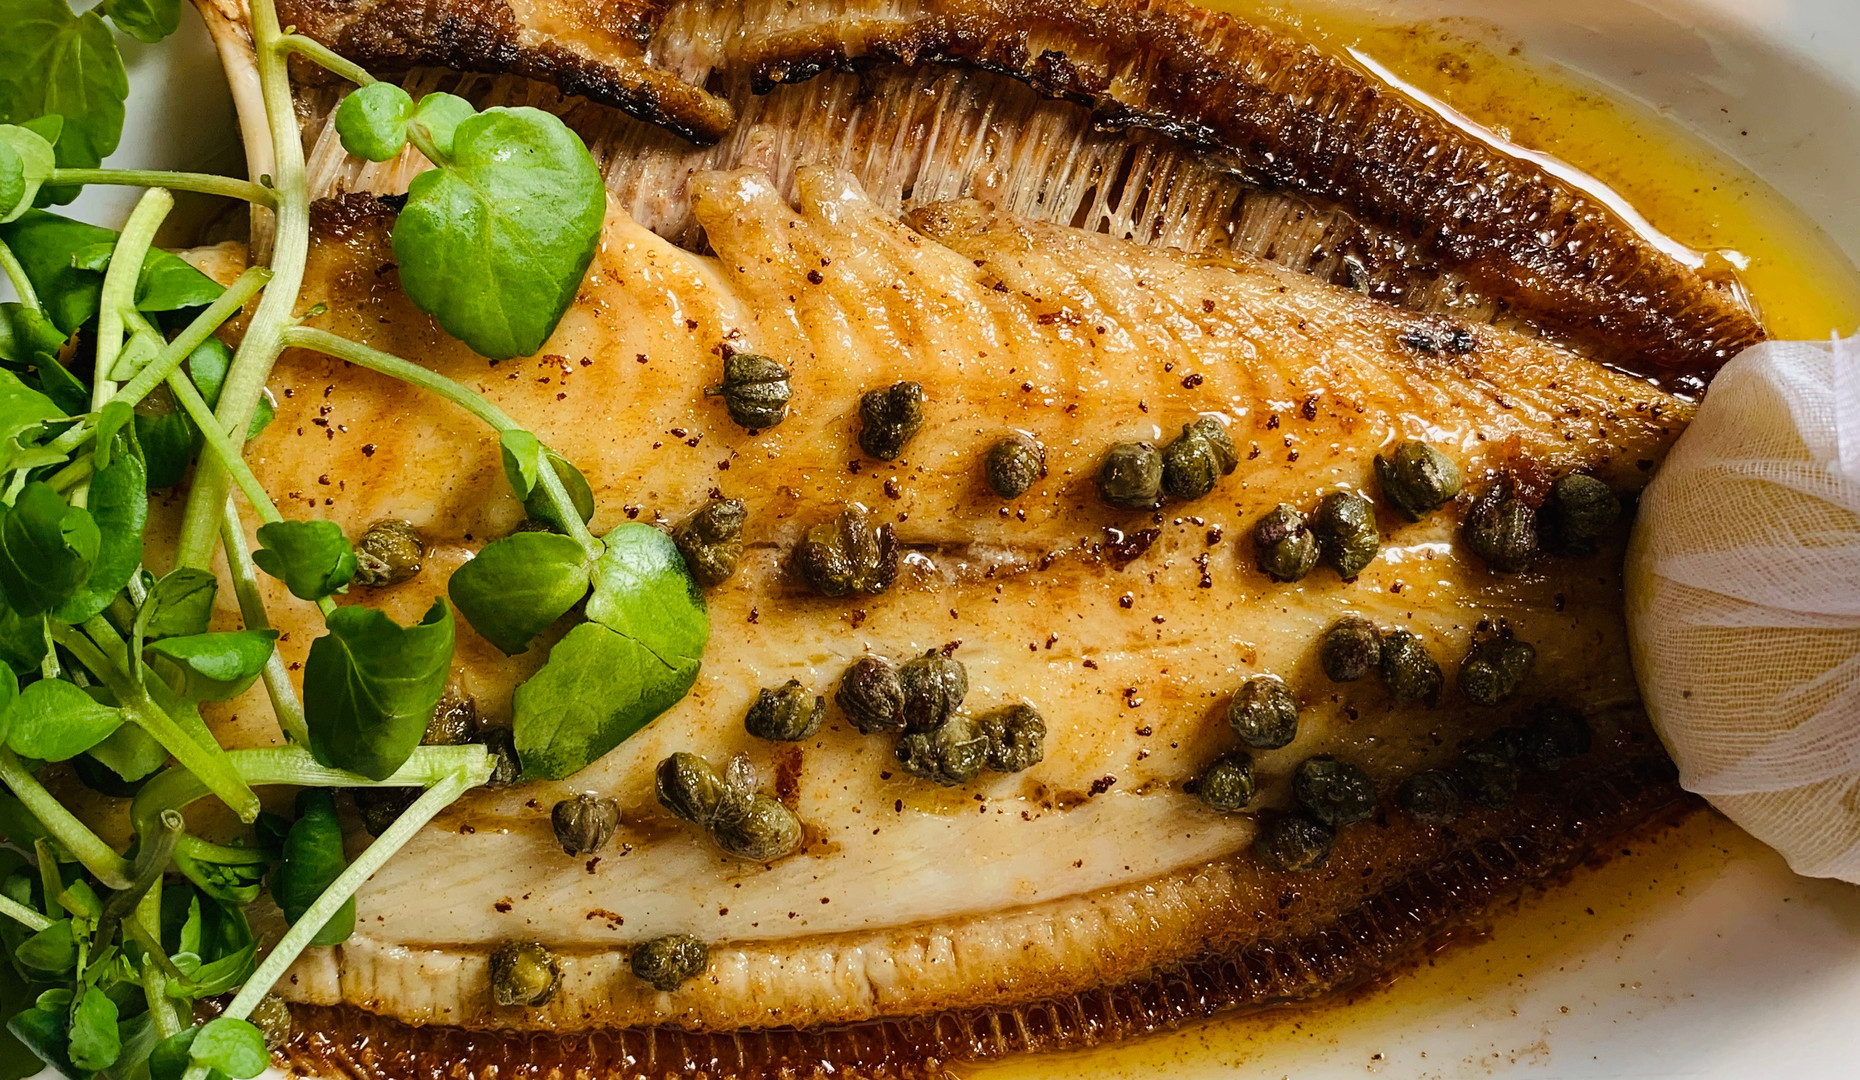 Lemon sole with beurre noisette and capers